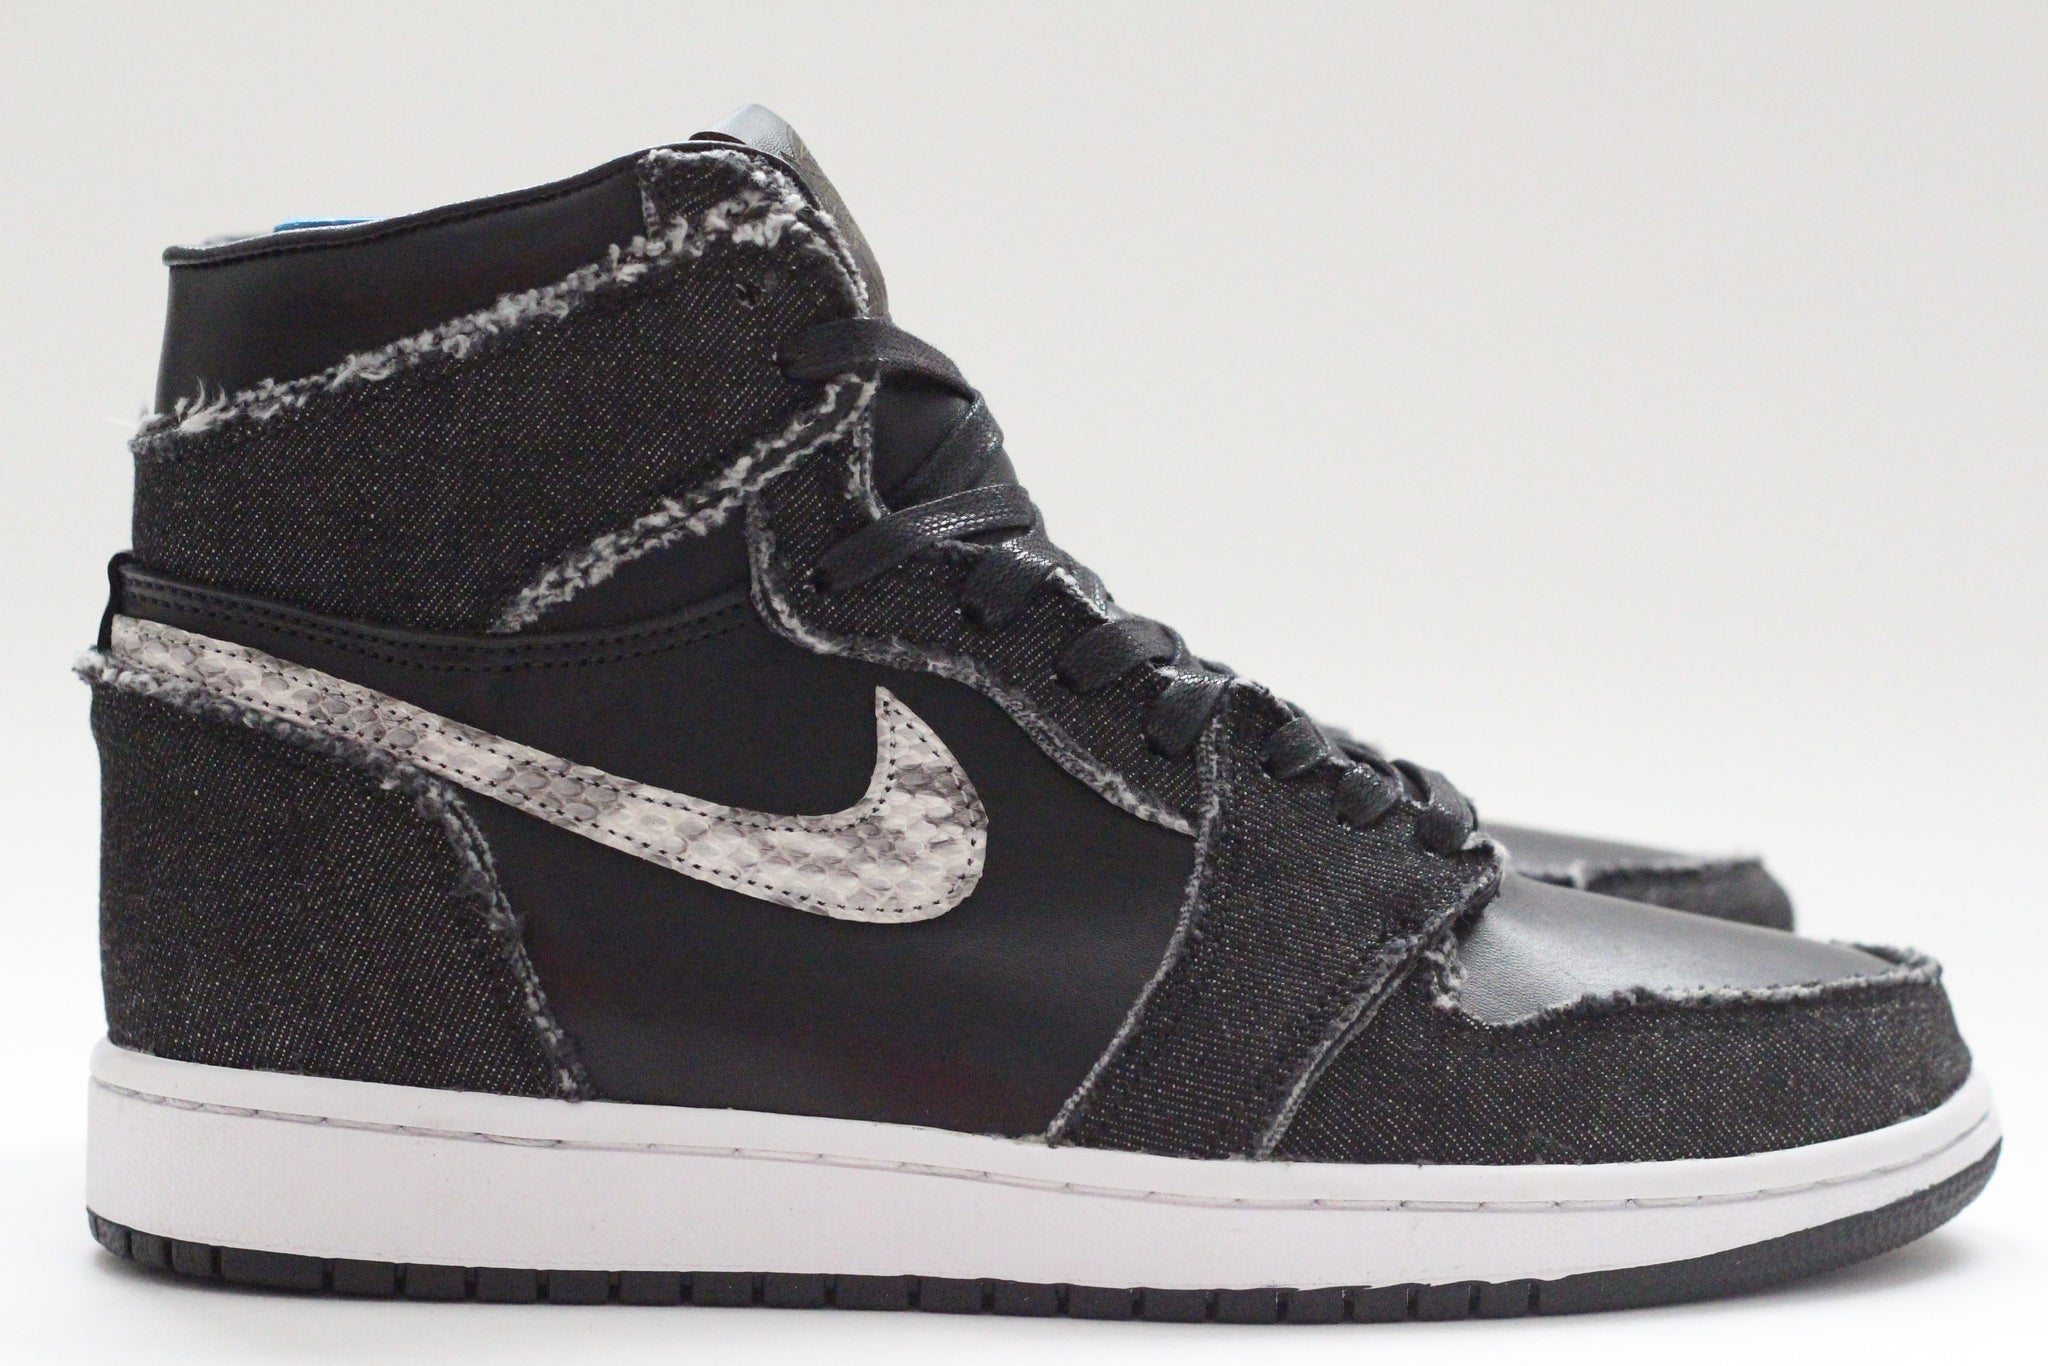 Copperhead Denim Jordan 1